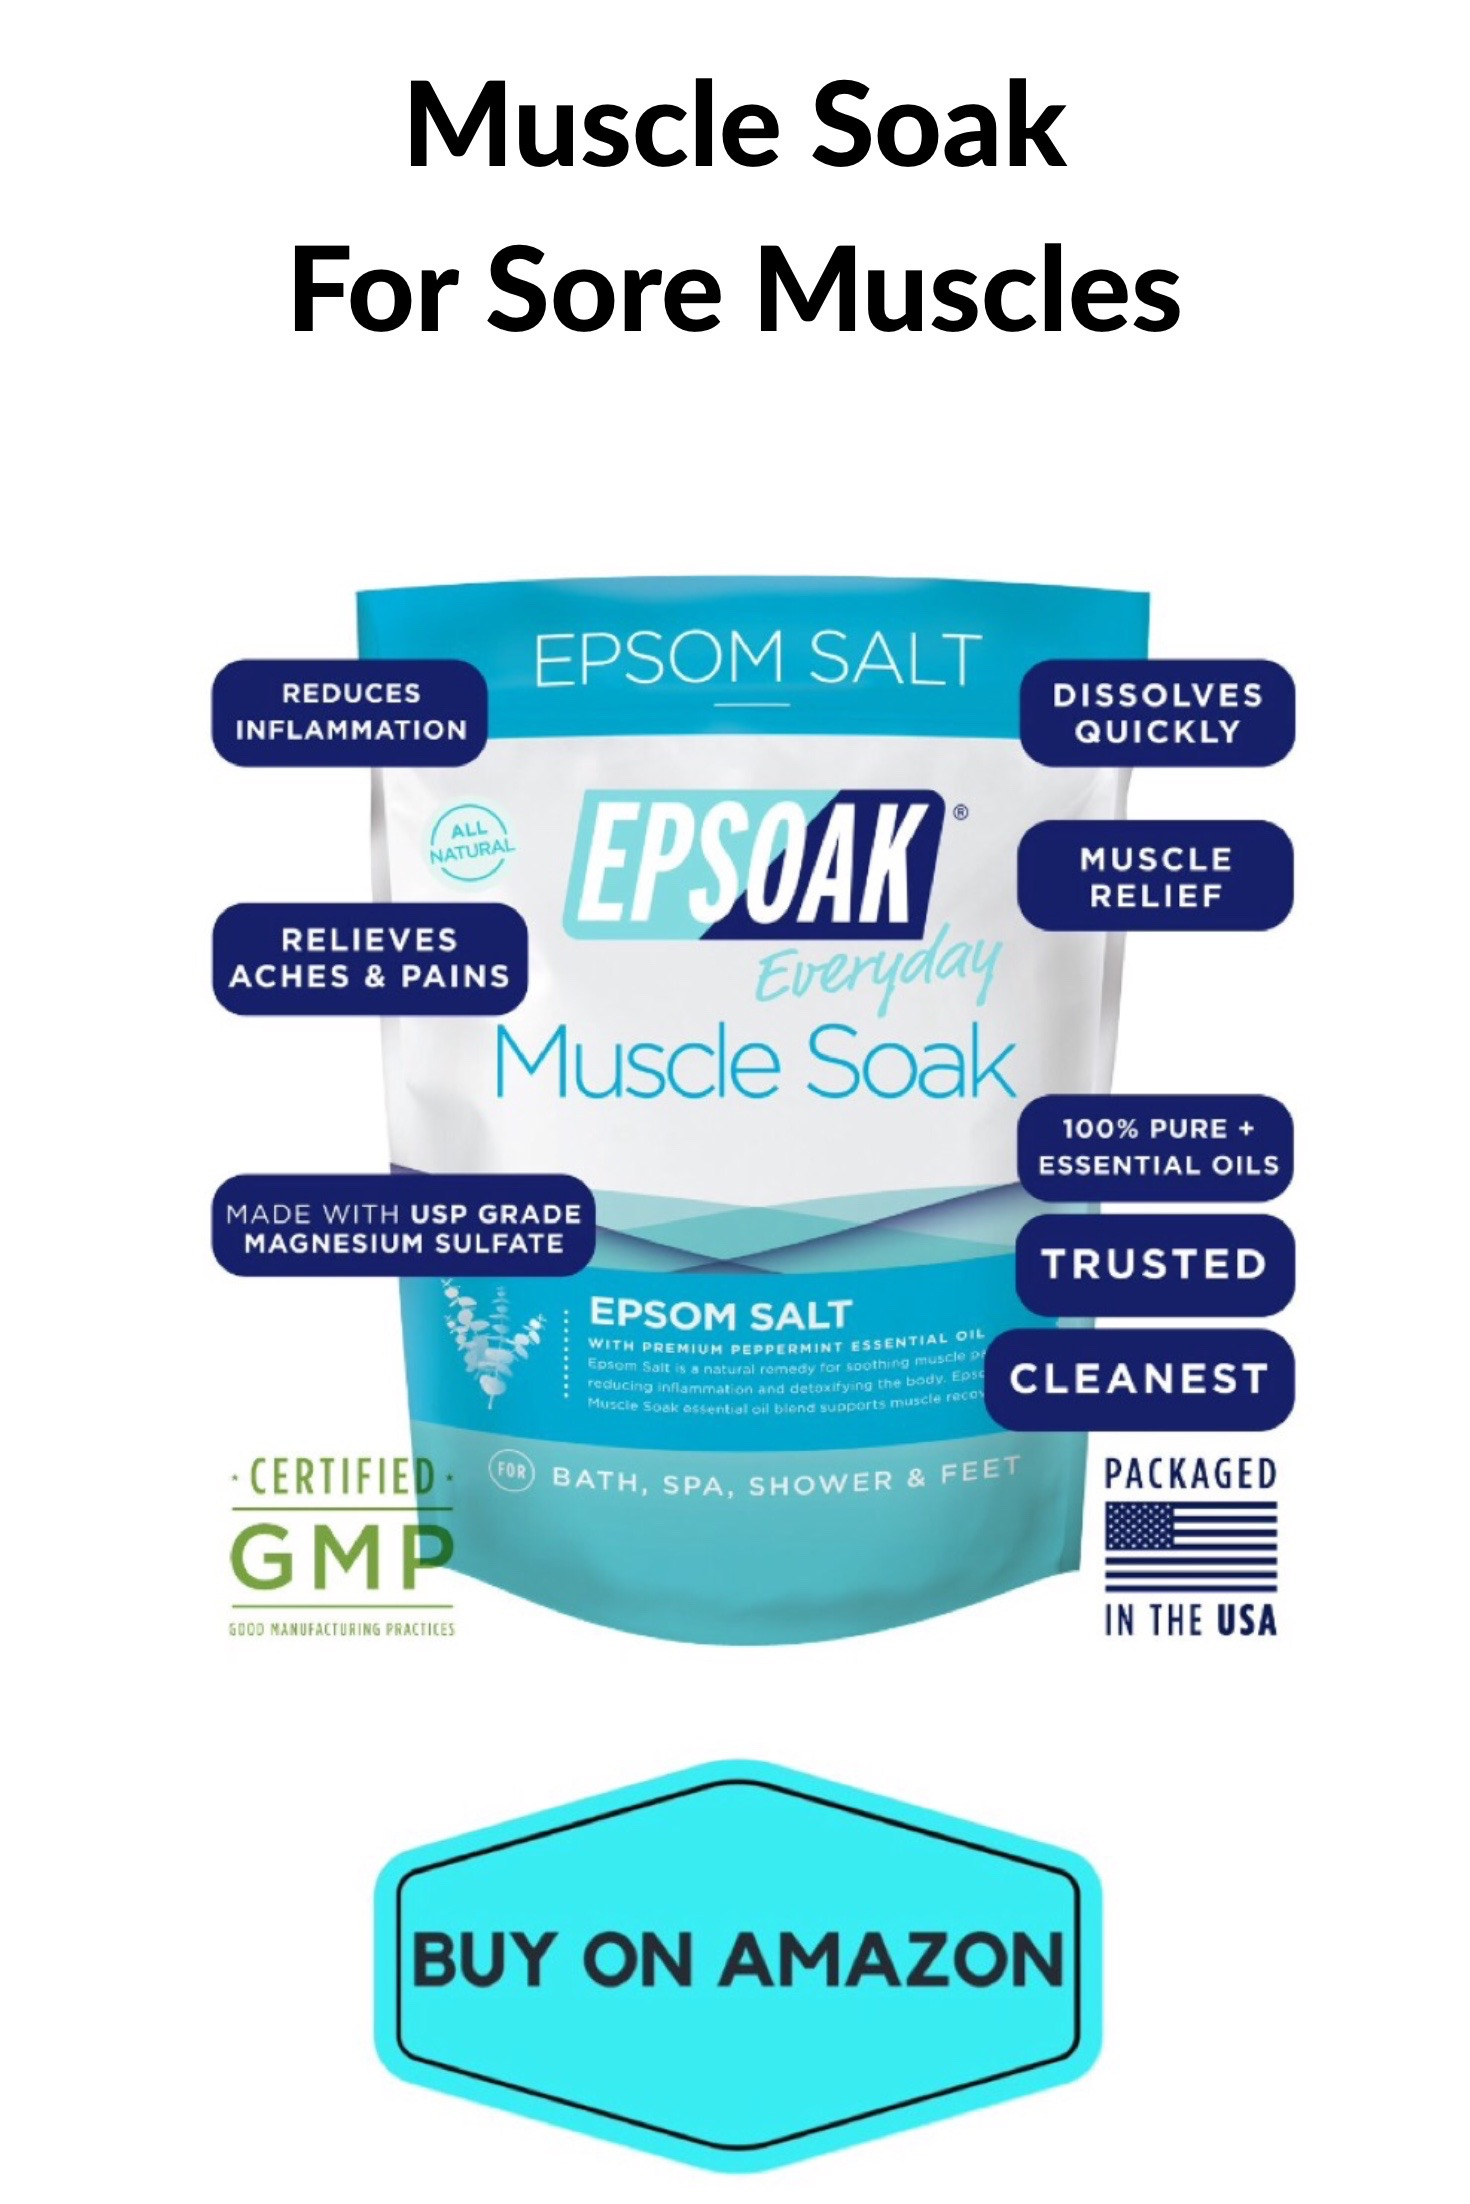 Muscle Soak For Sore Muscles